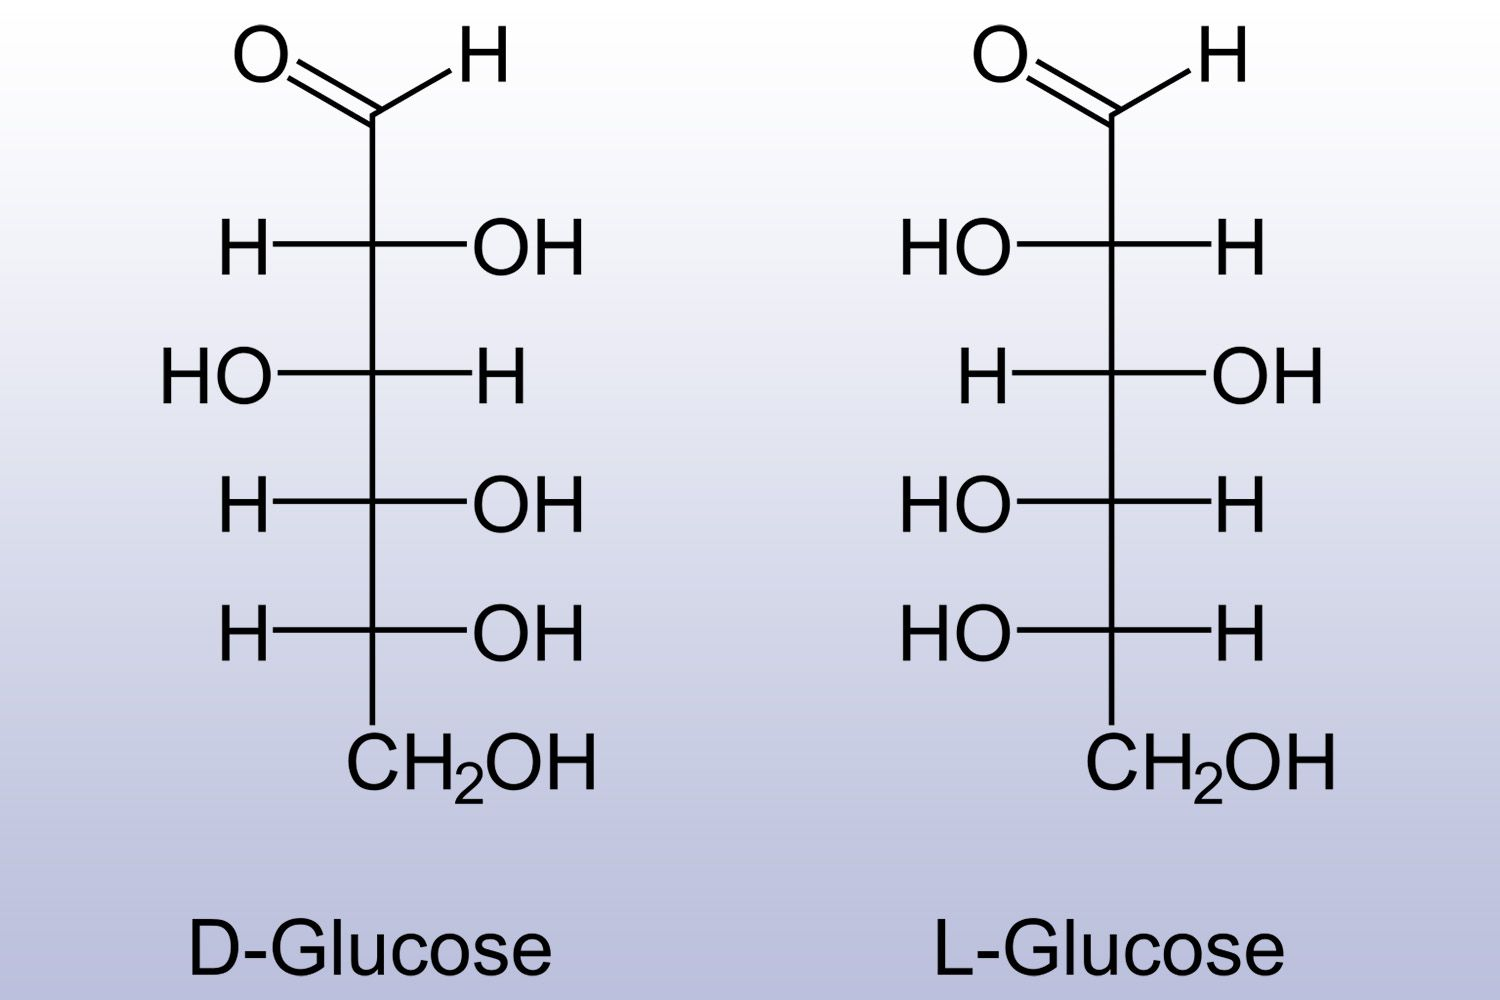 D-glucose and L-glucose structures